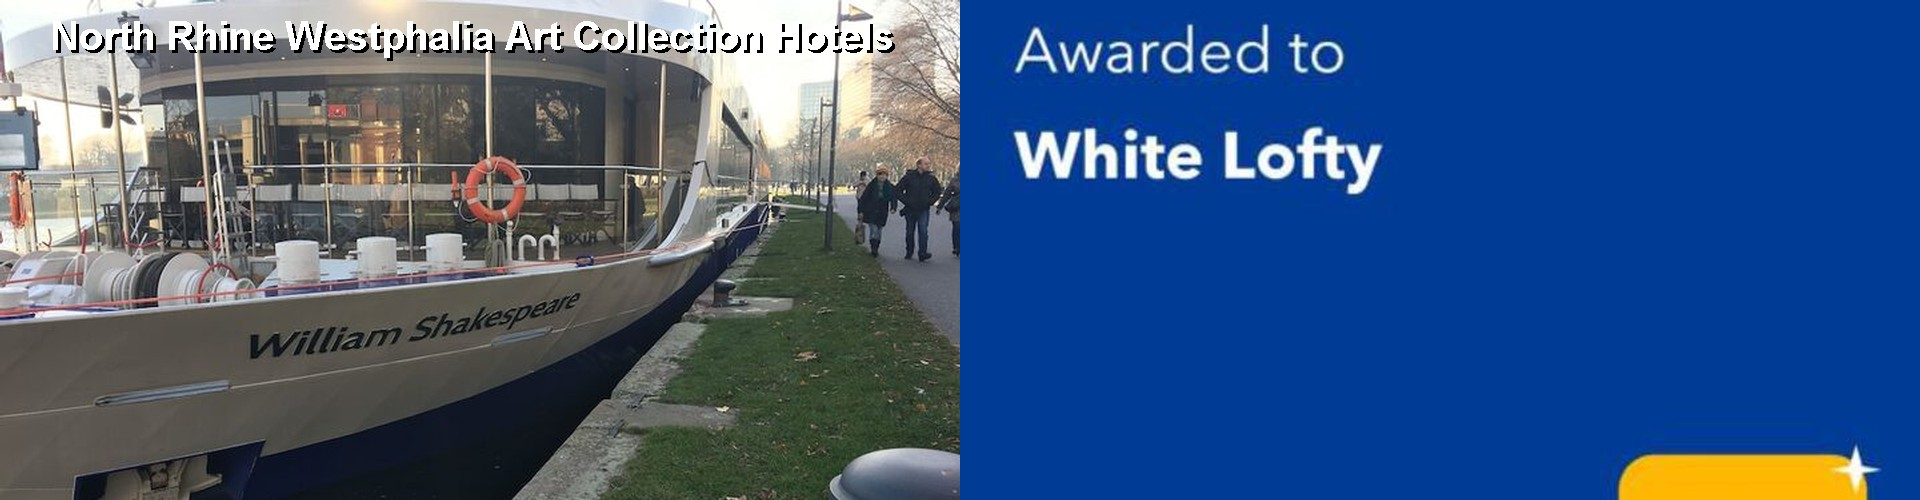 5 Best Hotels near North Rhine Westphalia Art Collection